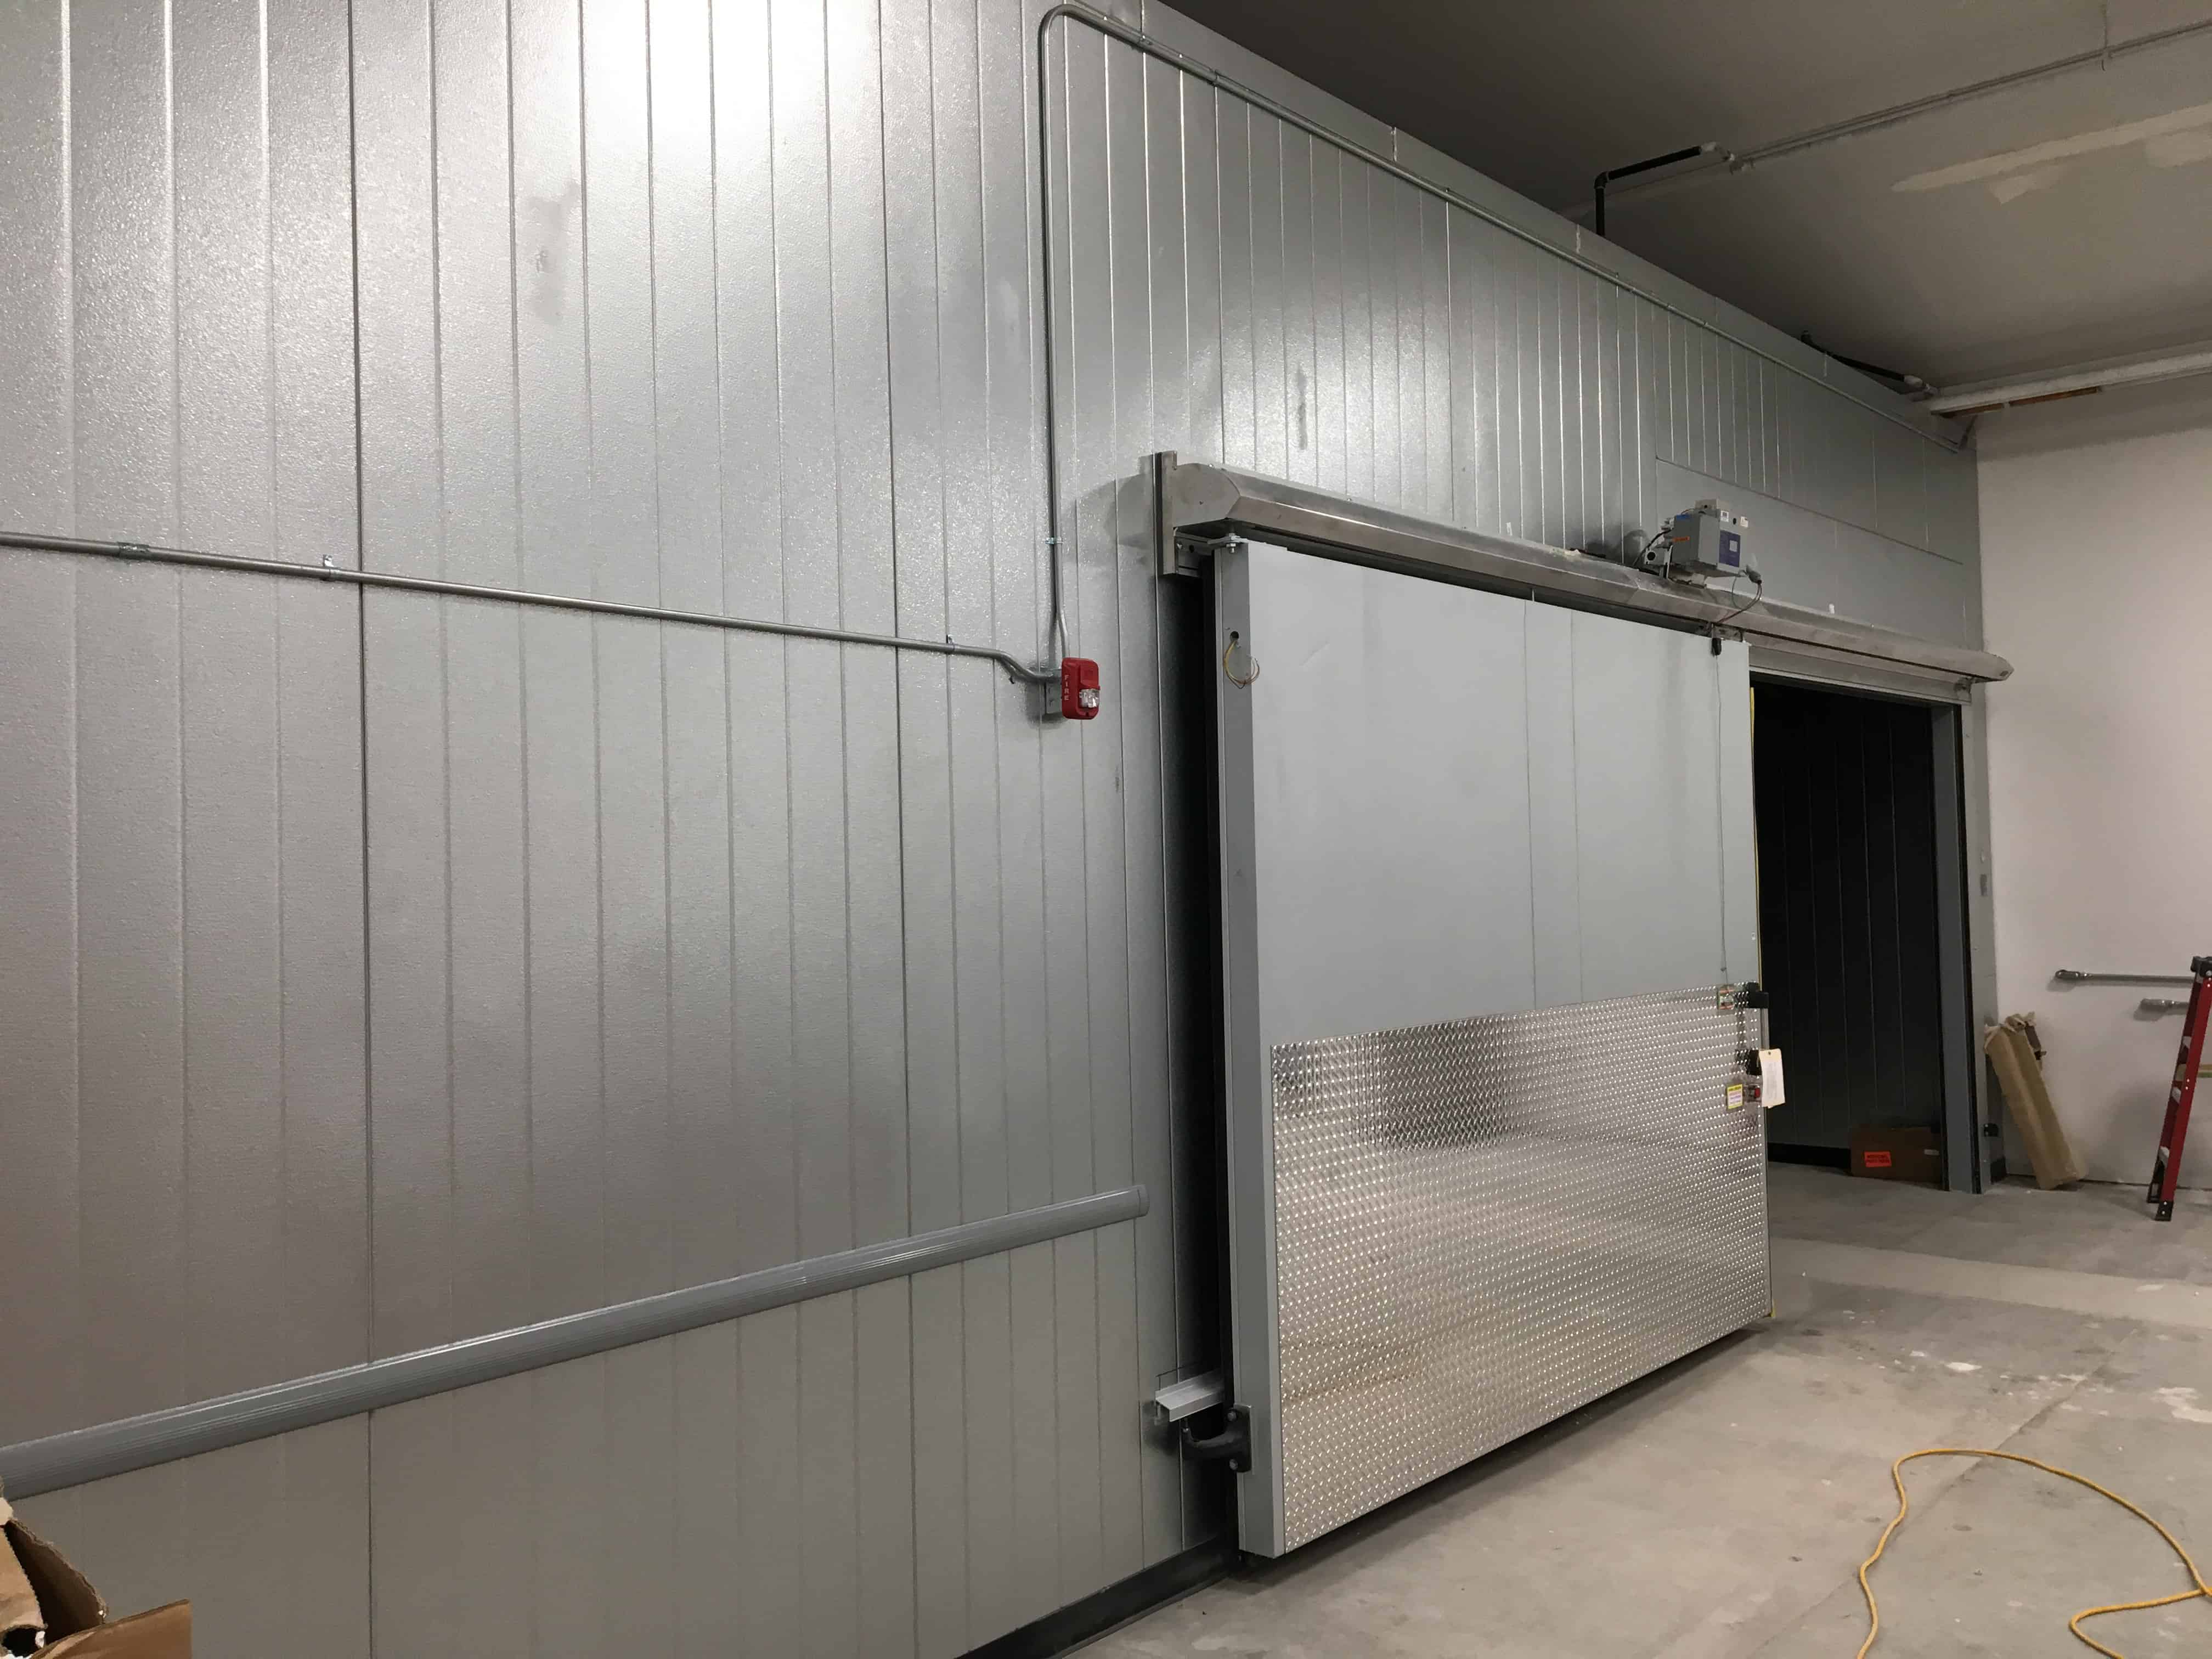 Commercial freezer with sliding door